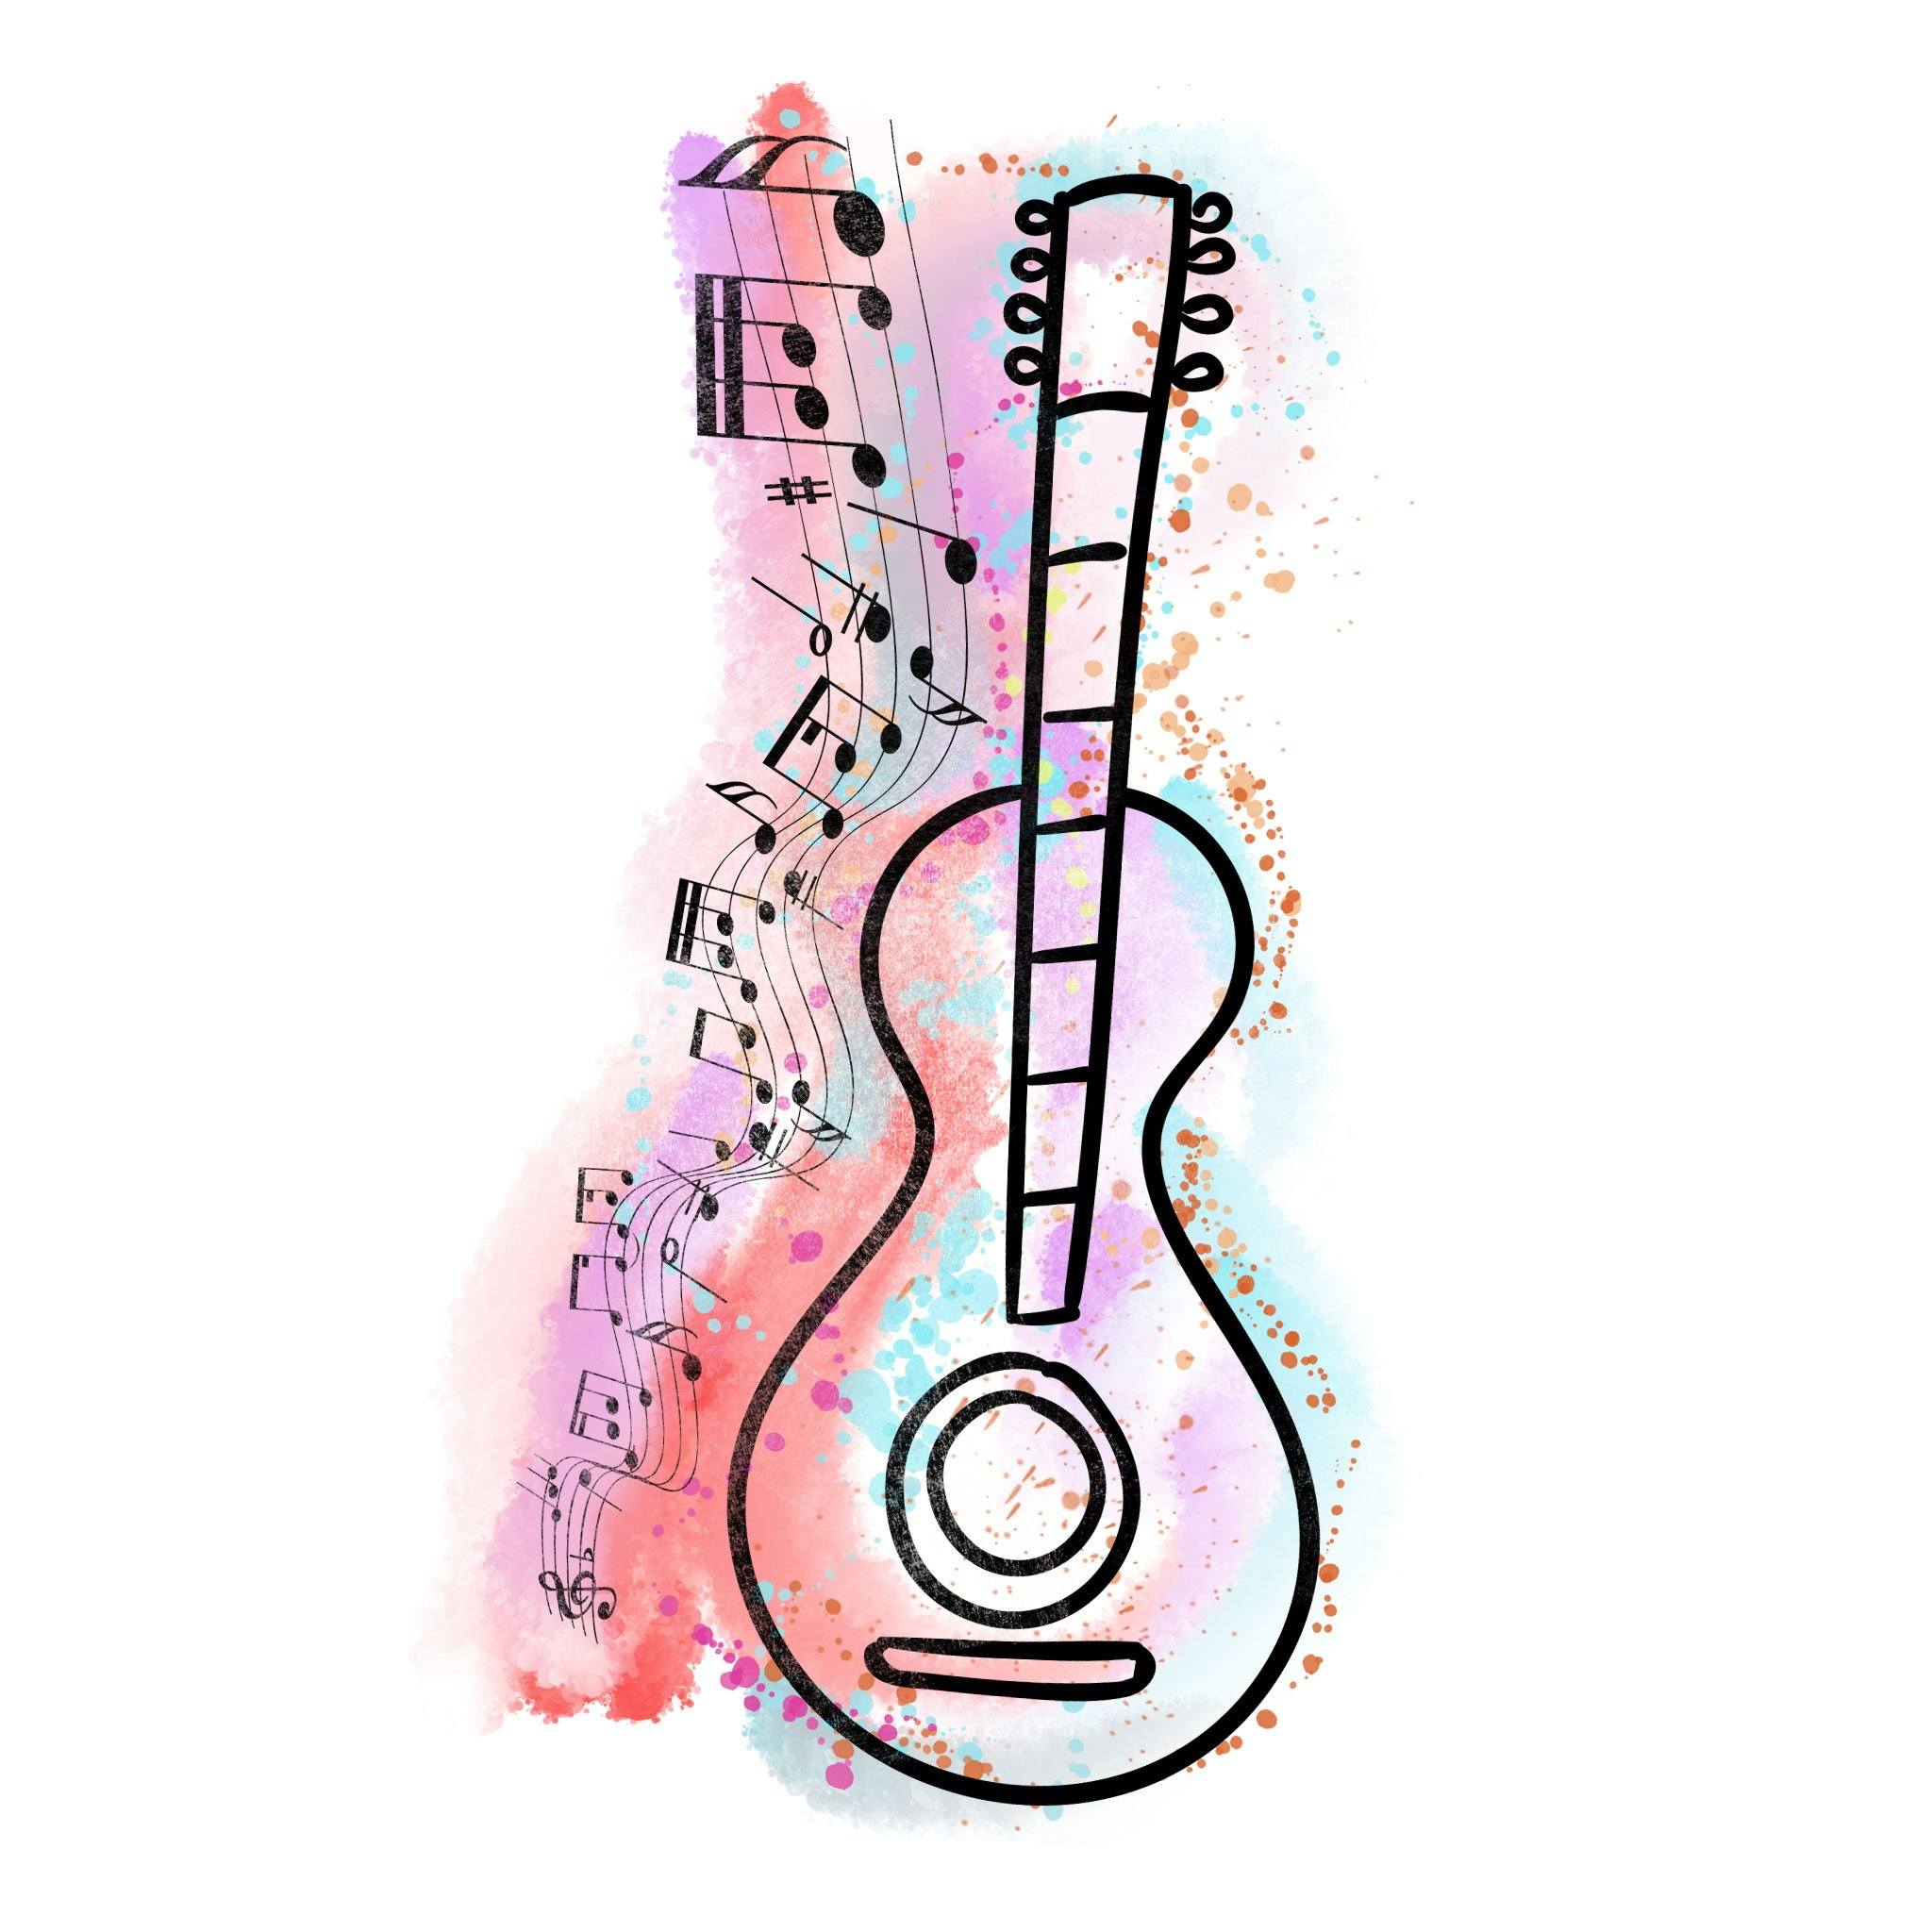 Music Temporary Tatoo Design. Tags: Watercolor, Abstract, Color,